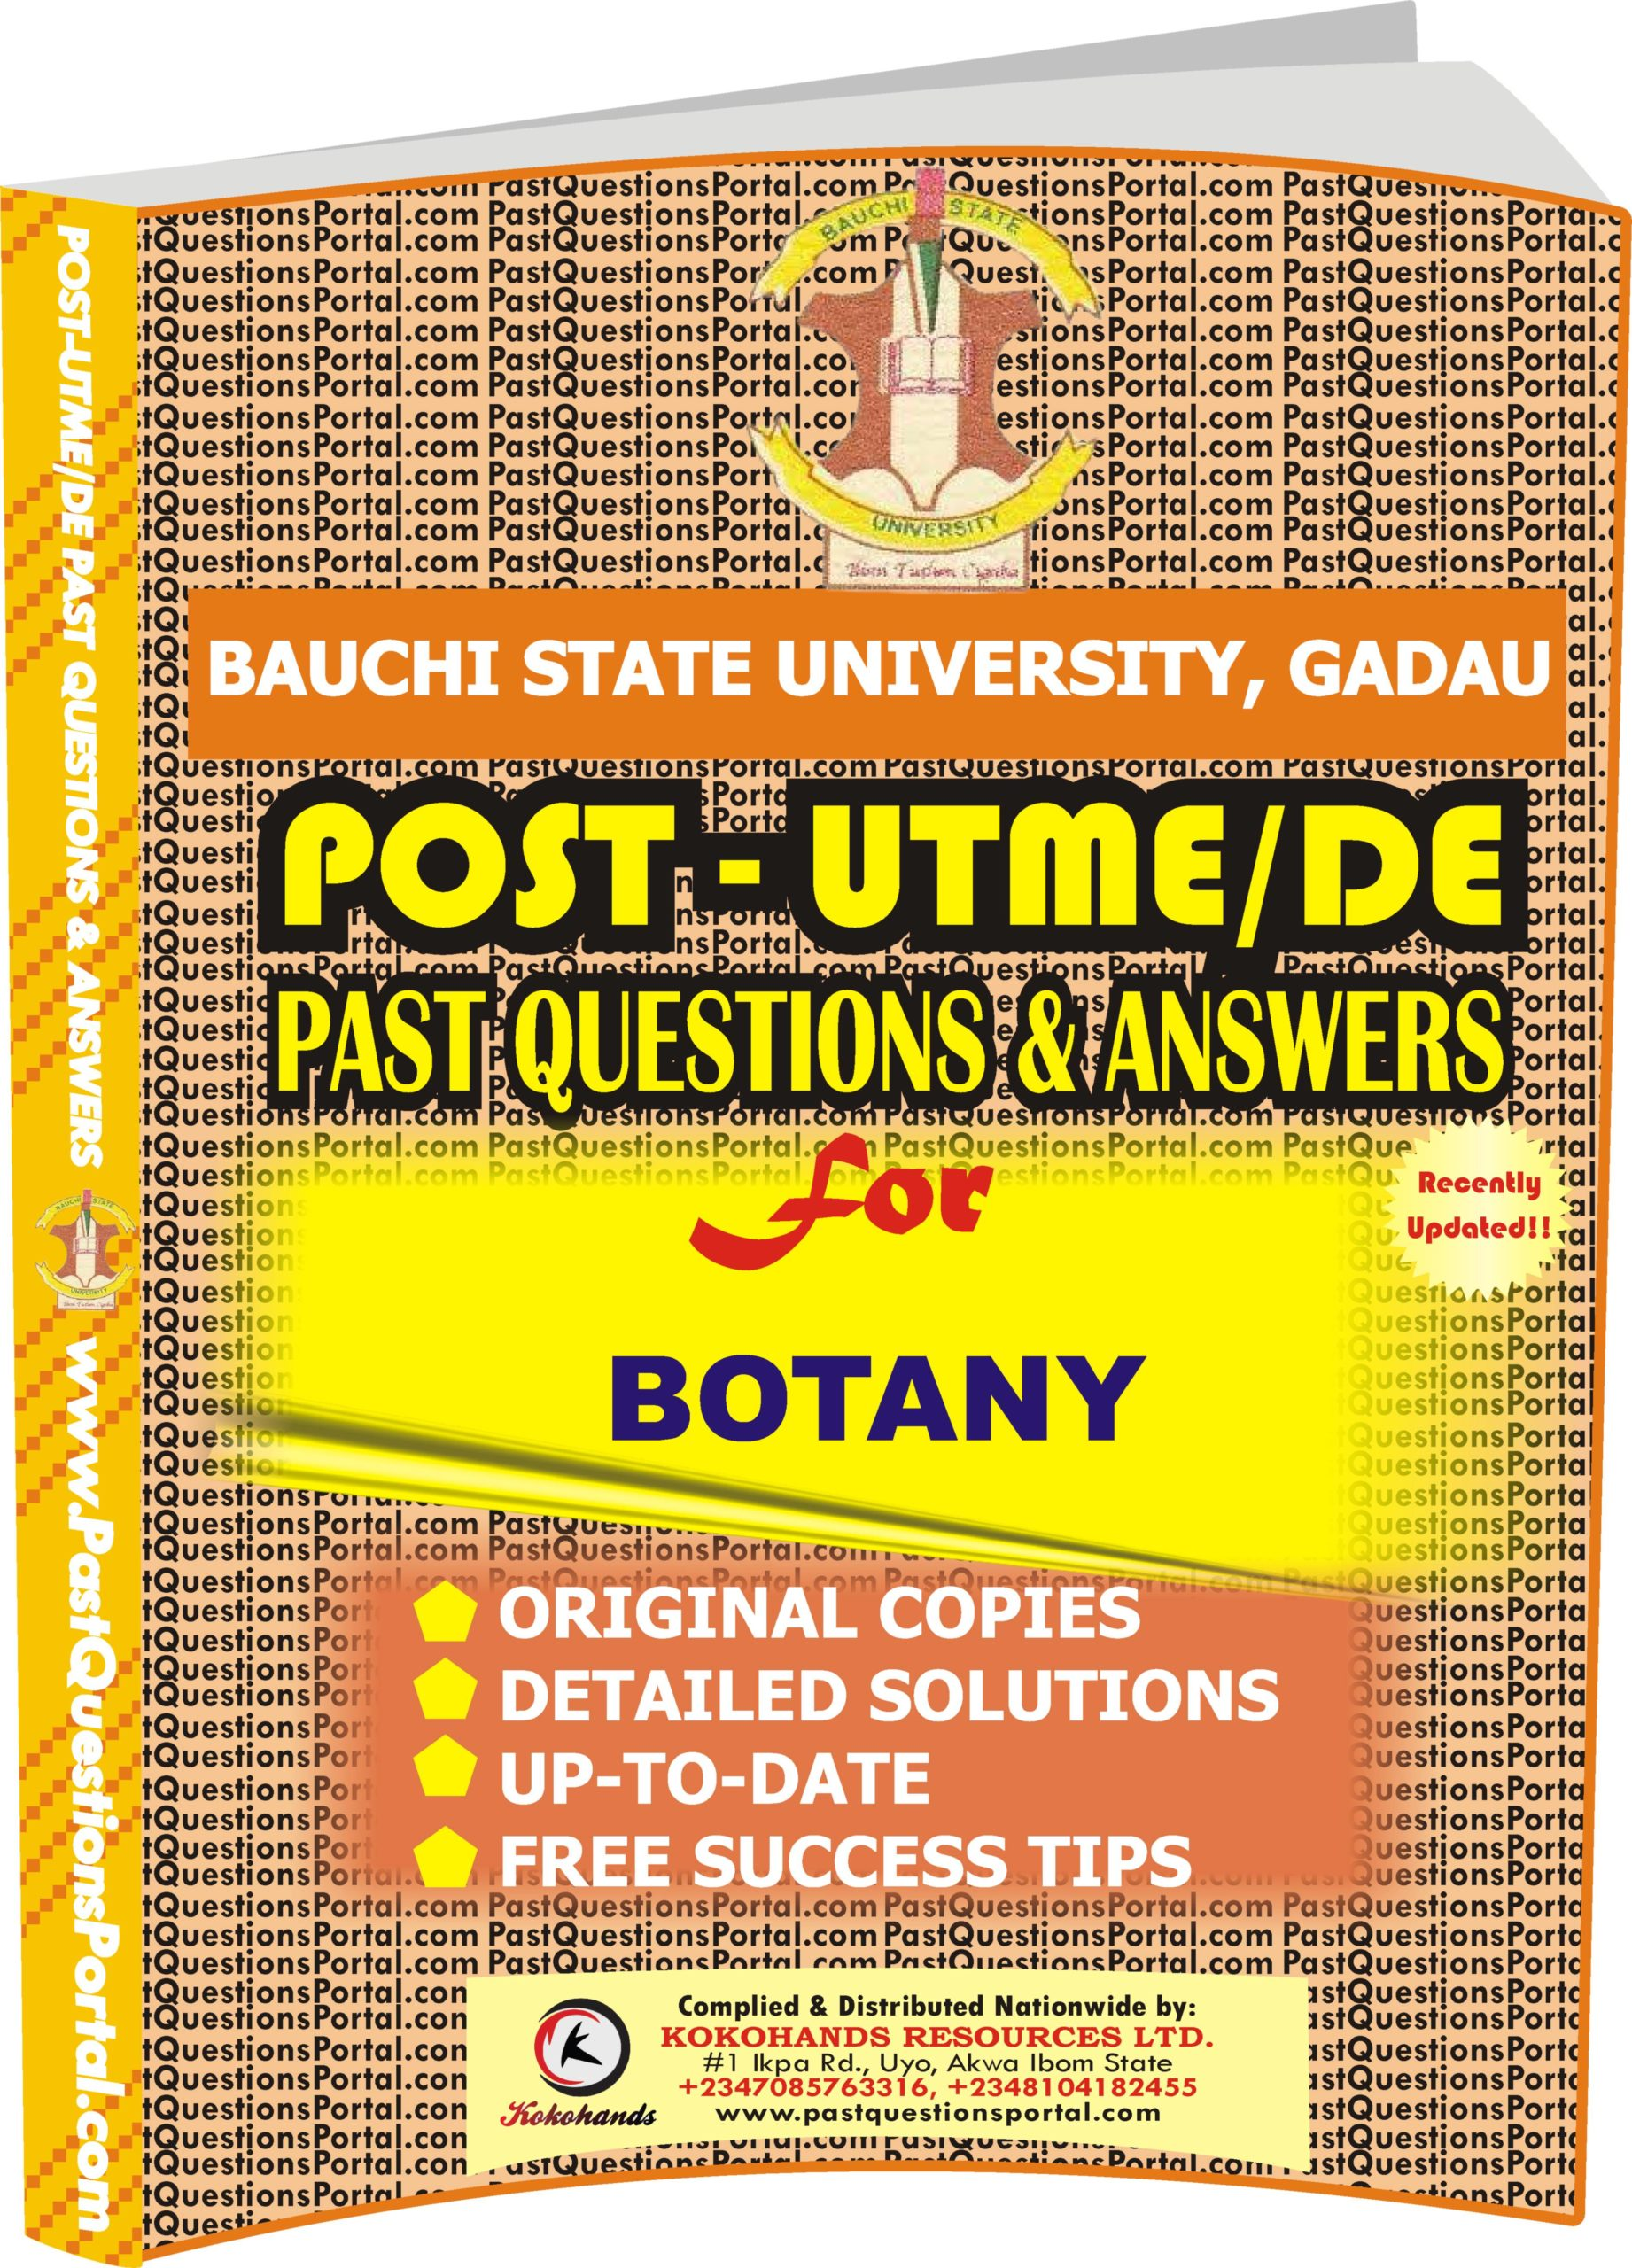 BASUG Post UTME Past Questions for BOTANY